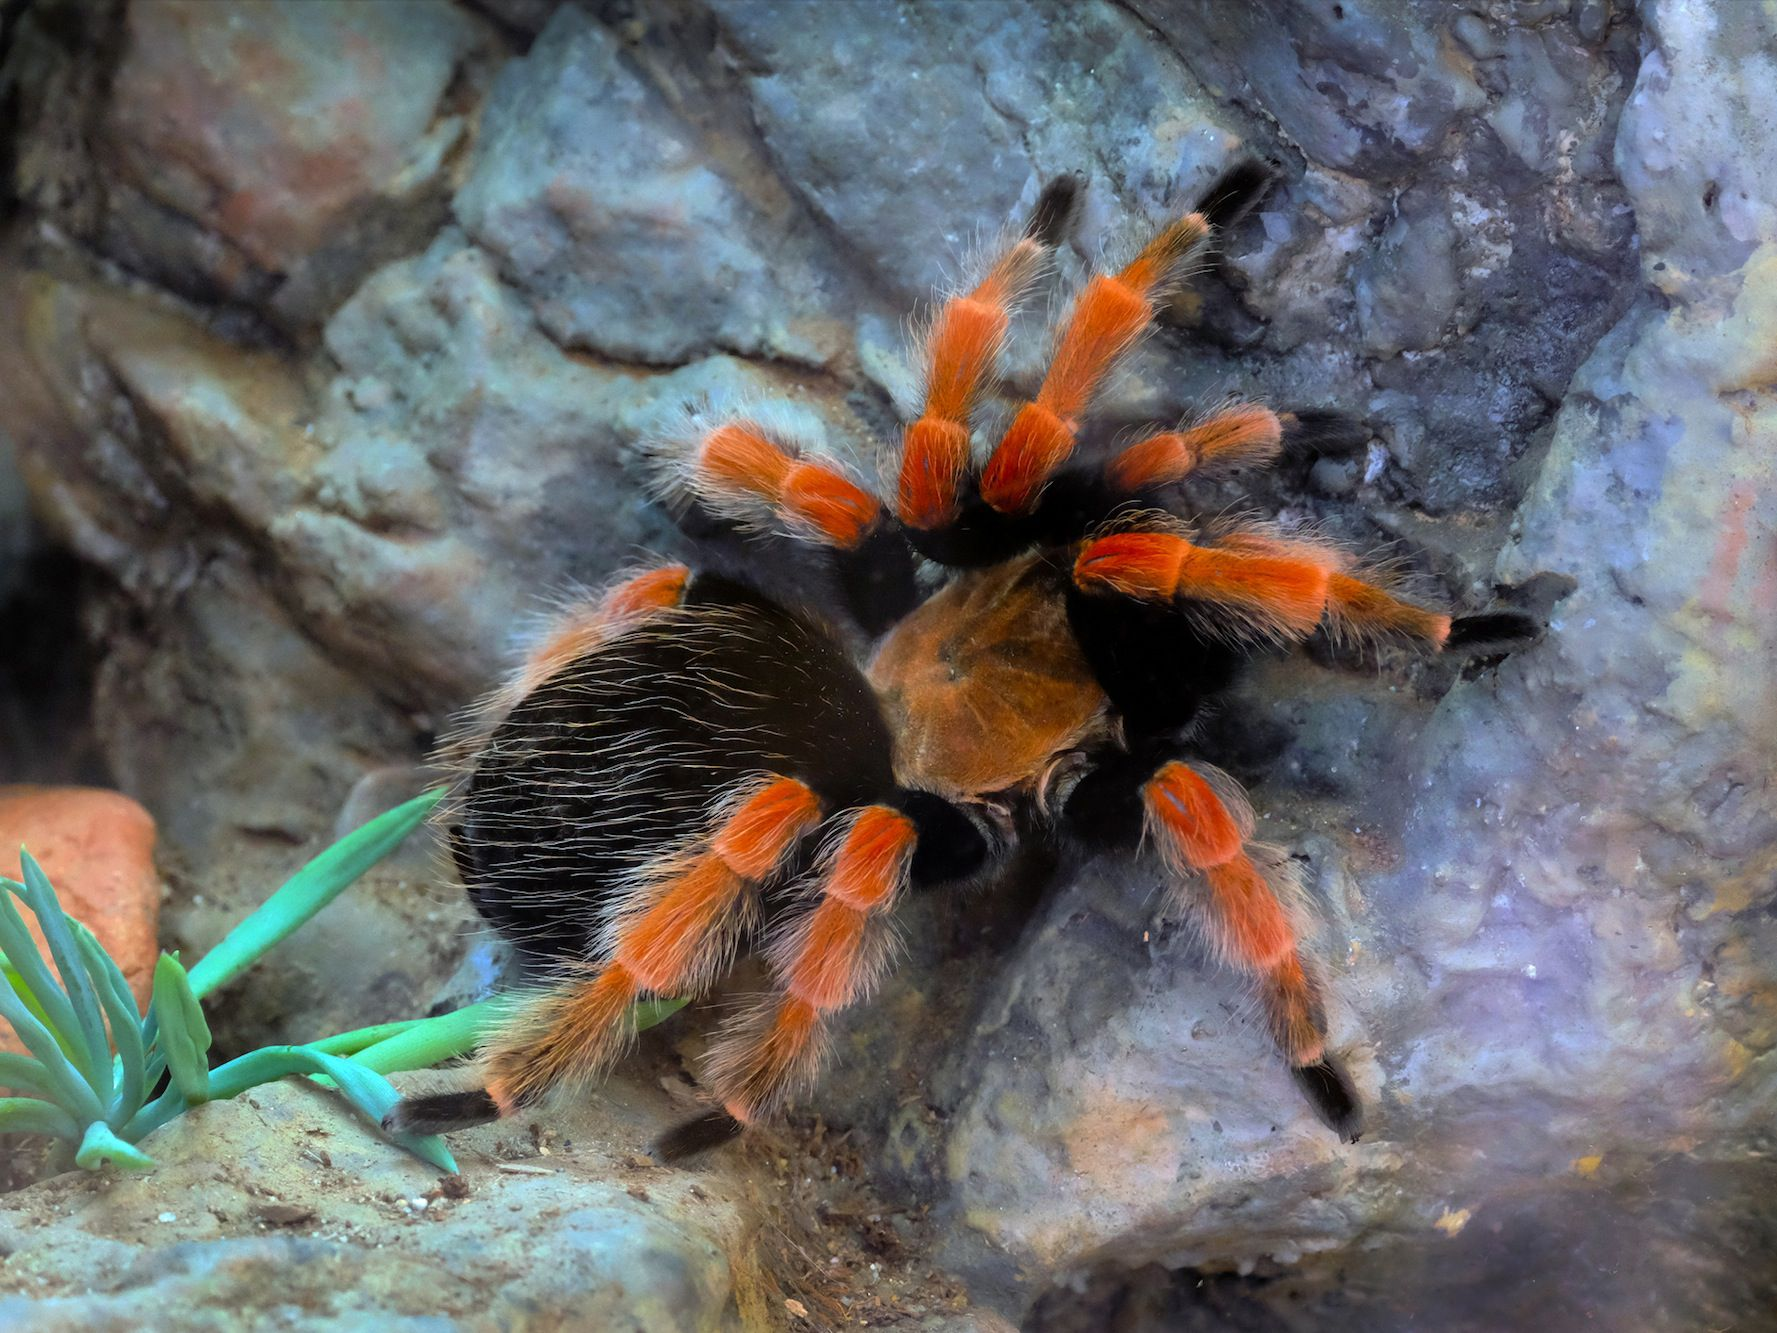 Keeping And Caring For Mexican Red Knee Tarantulas As Pets